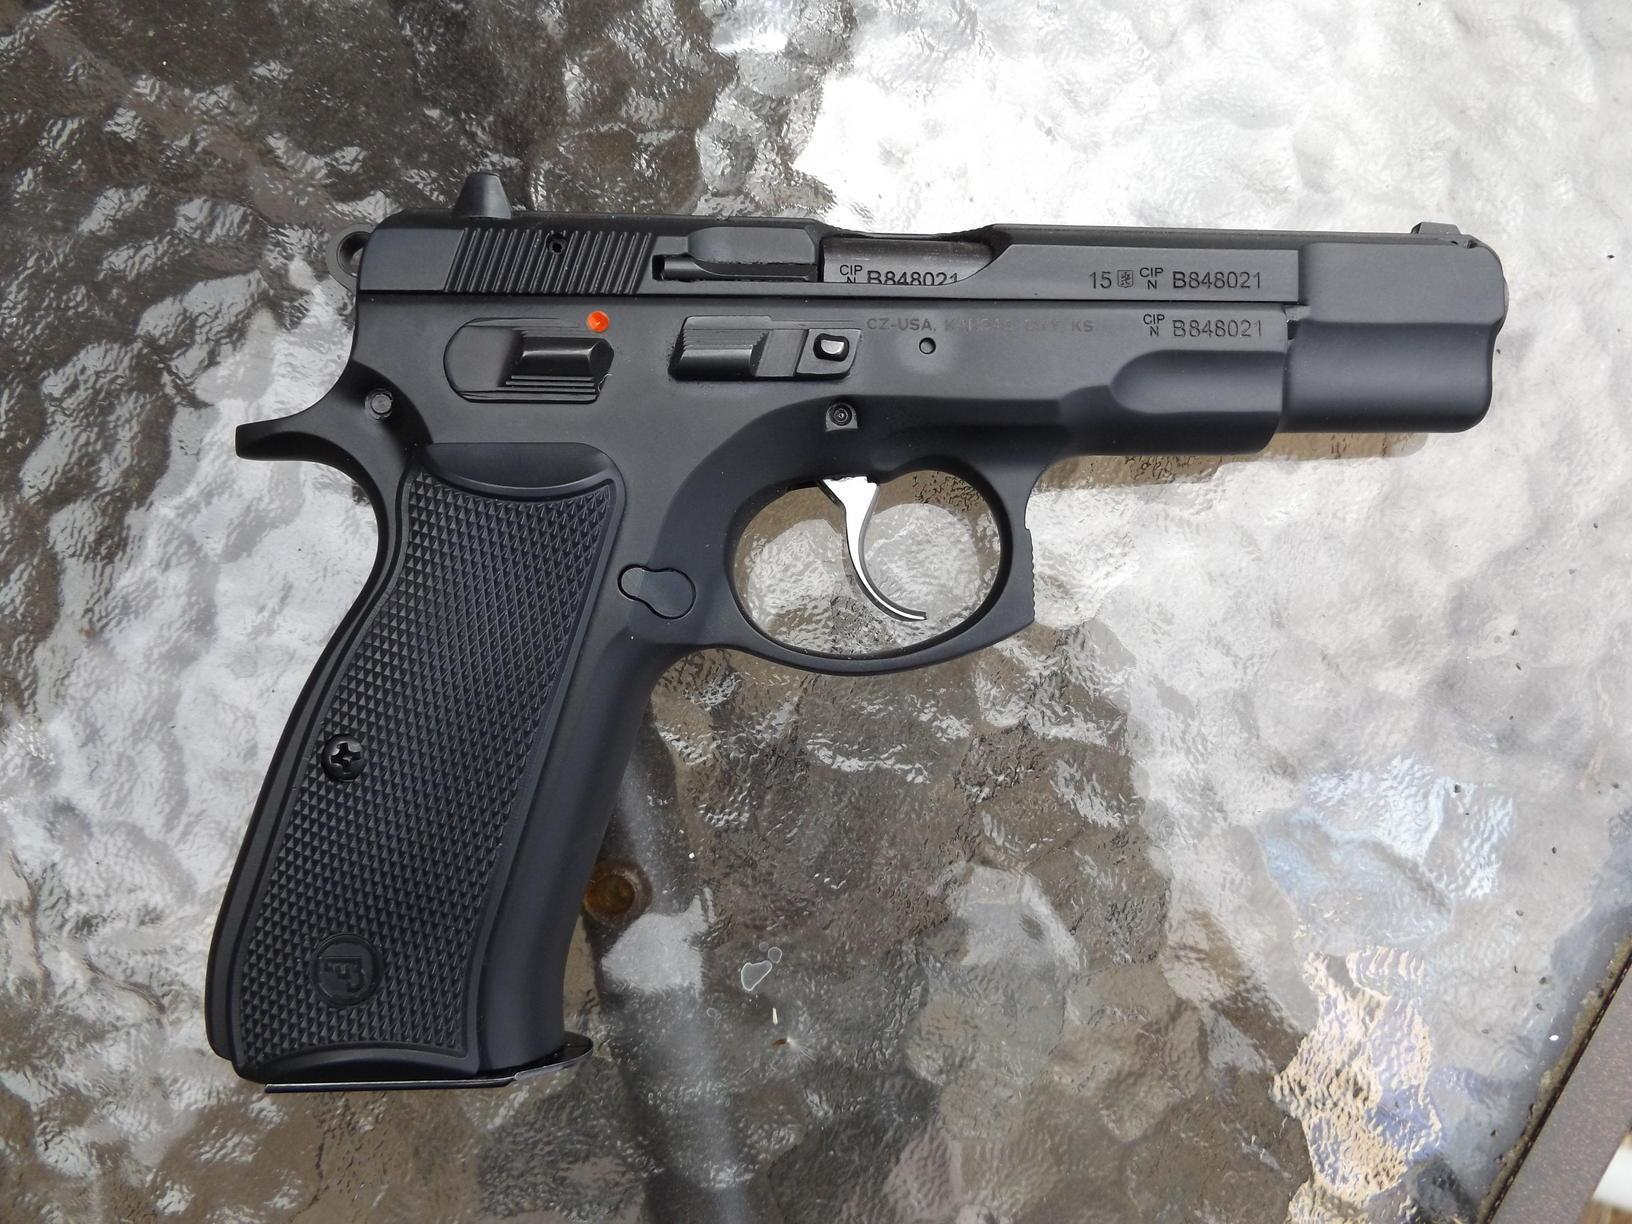 CZ 85 B is an updated version of the CZ 75 with a firing pin block that is also ambidextrous